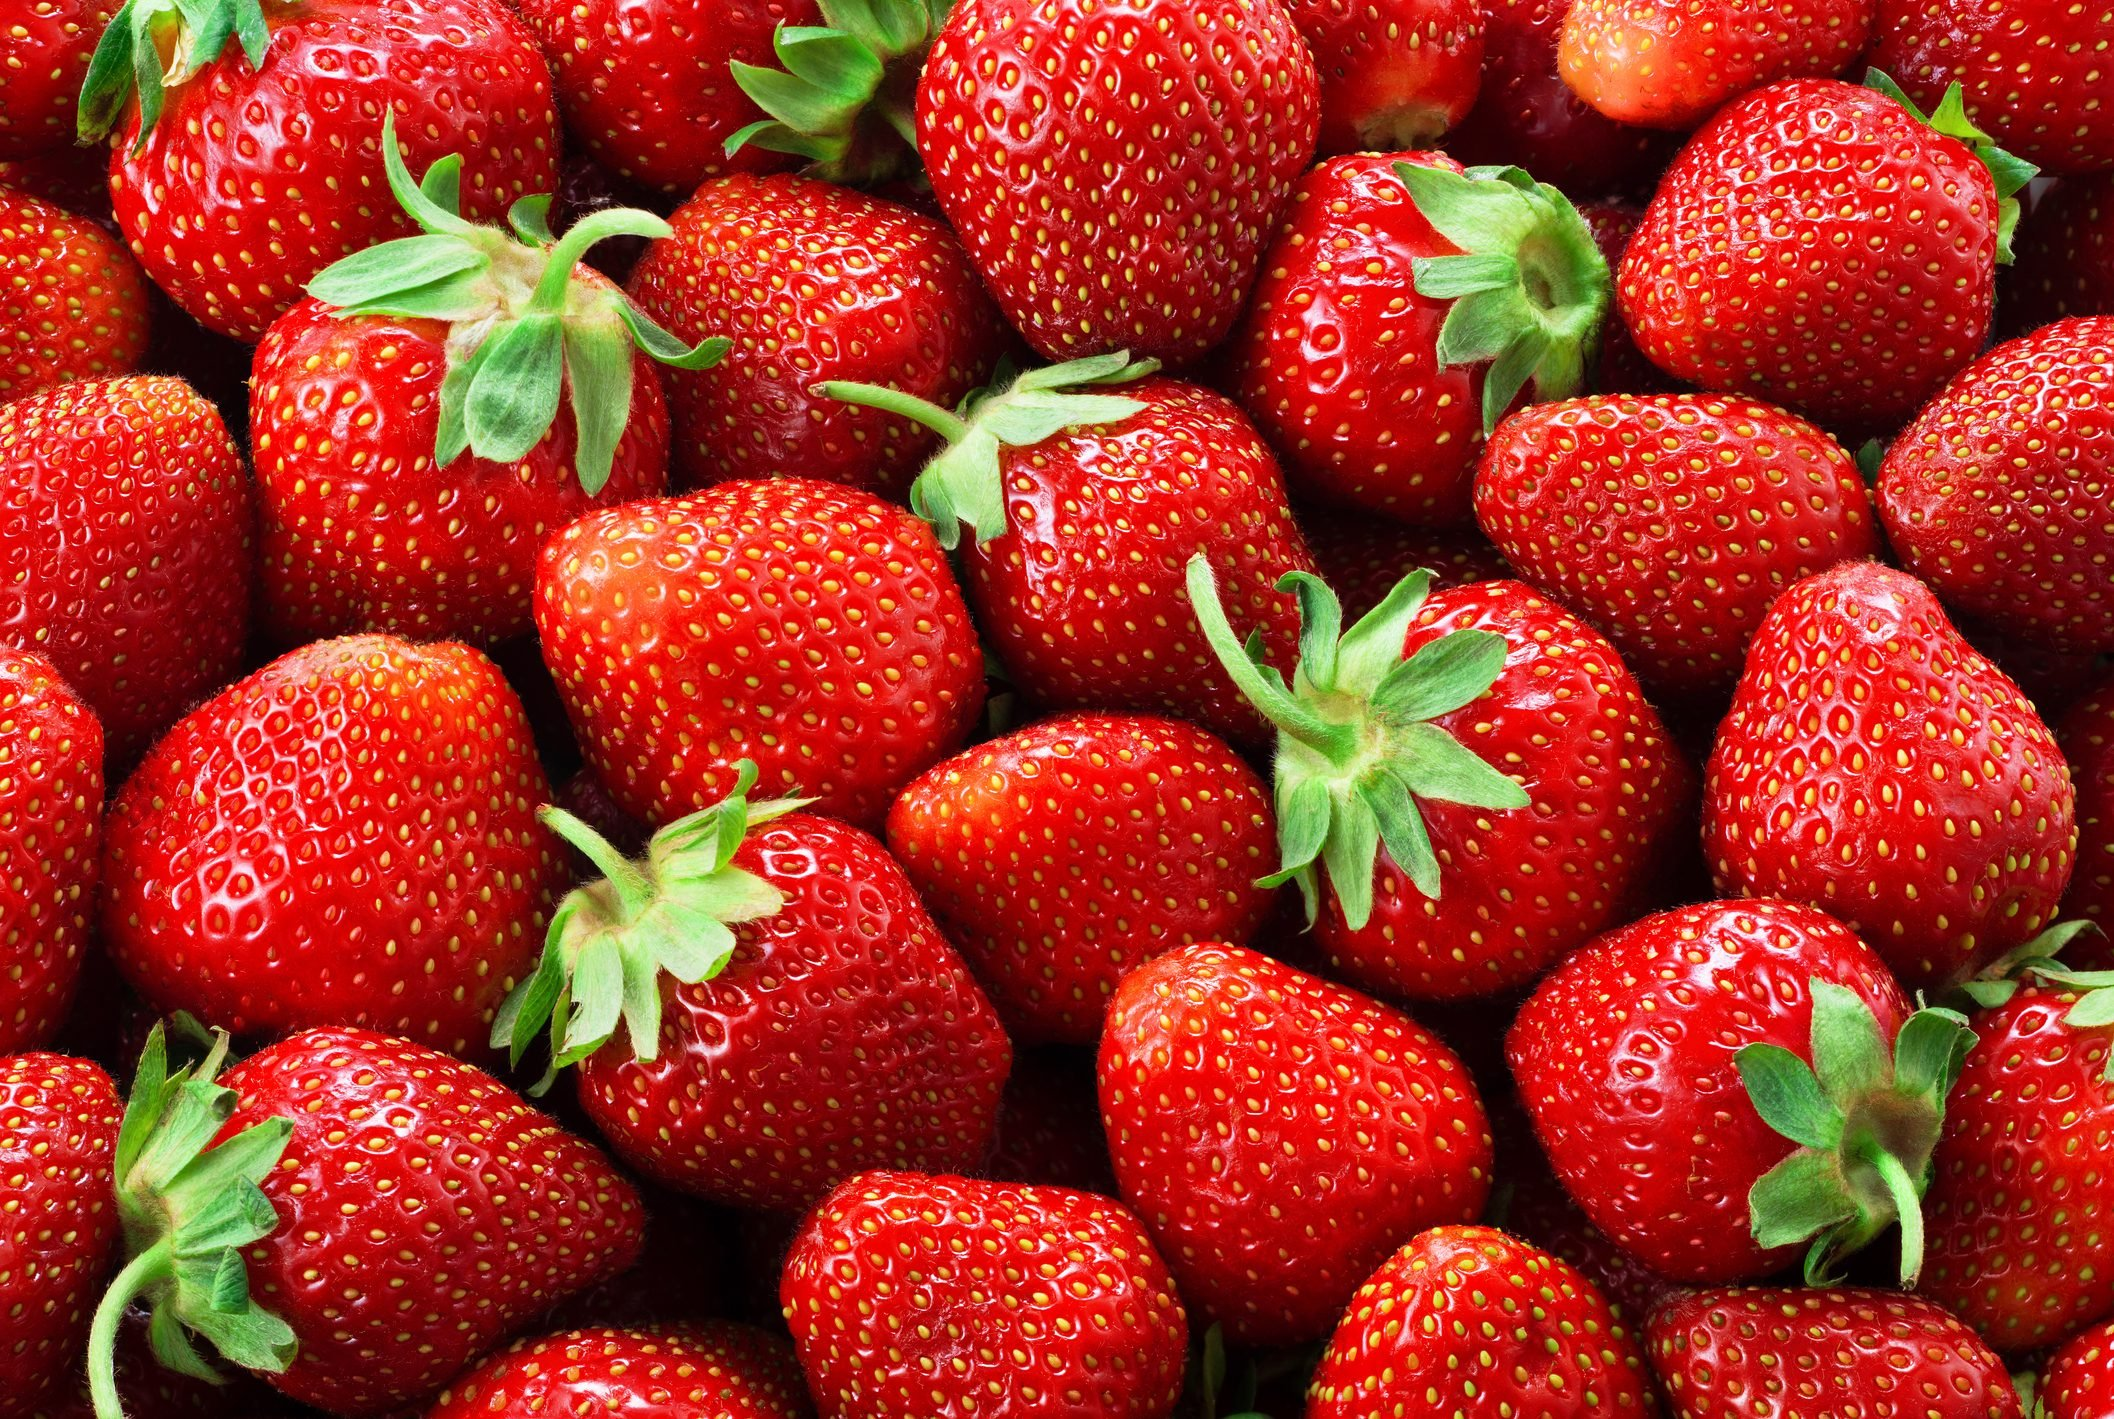 Strawberry background. Strawberries.